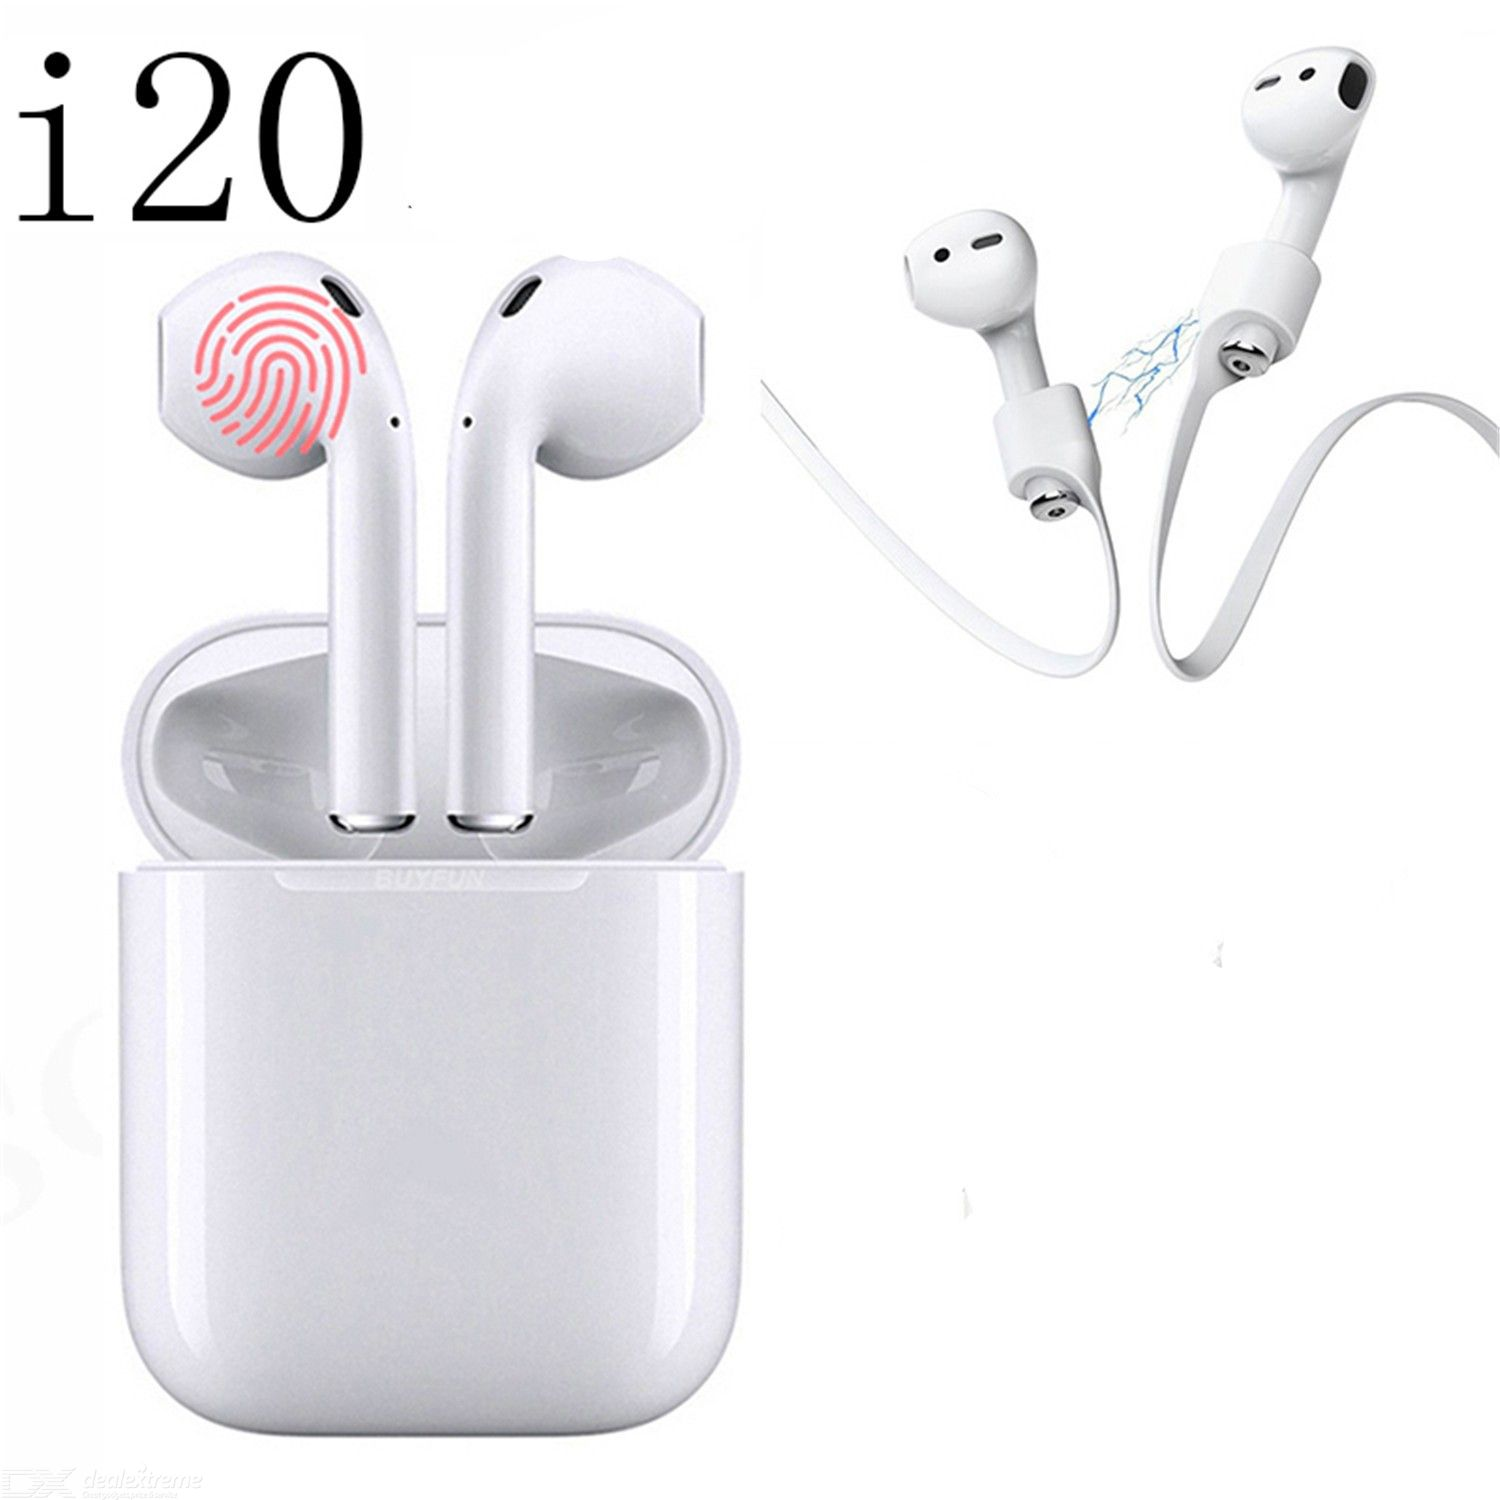 i20TWS Bluetooth 5.0 Wireless Earphones TWS Touch Control Pop-up Headphones with Mic Charging Case for iOS Android